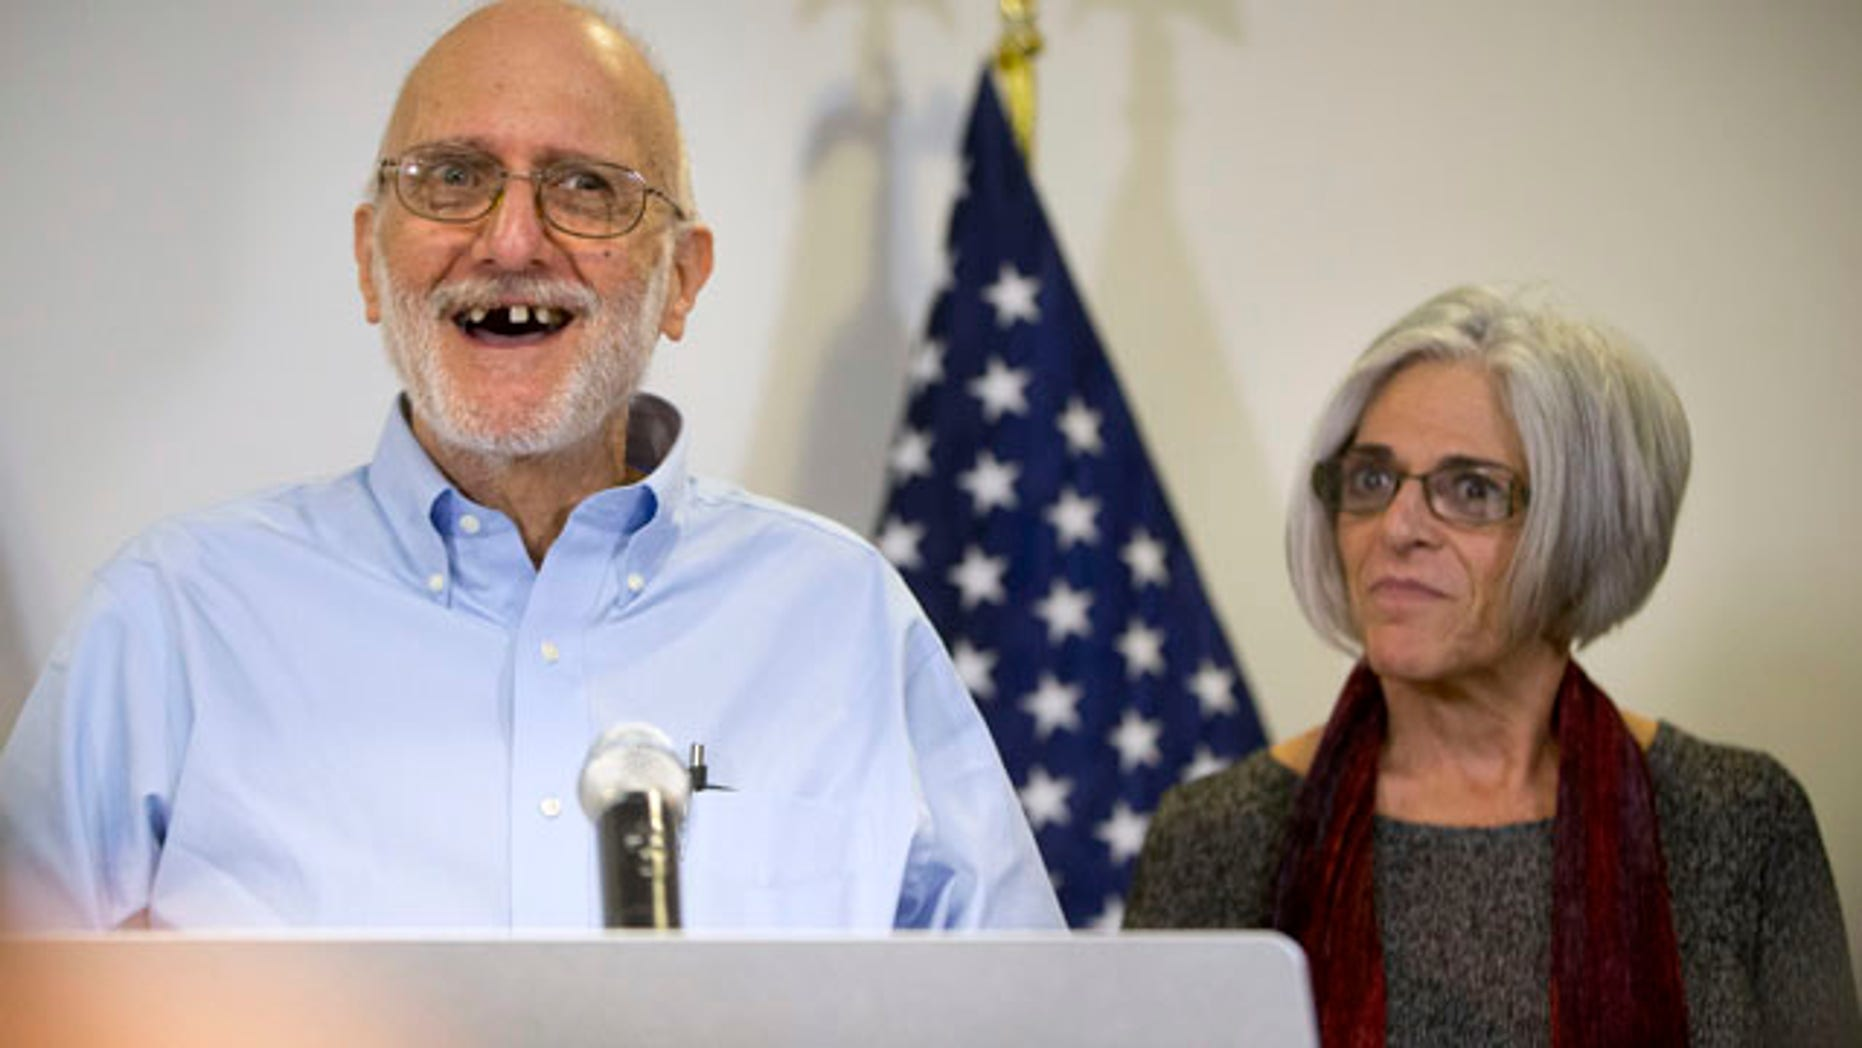 Dec. 17, 2014: Alan Gross, accompanied by his wife, Judy, speaks during a news conference at his lawyer's office in Washington. Gross was released from Cuba after five years in a Cuban prison. (AP Photo/Pablo Martinez Monsivais)